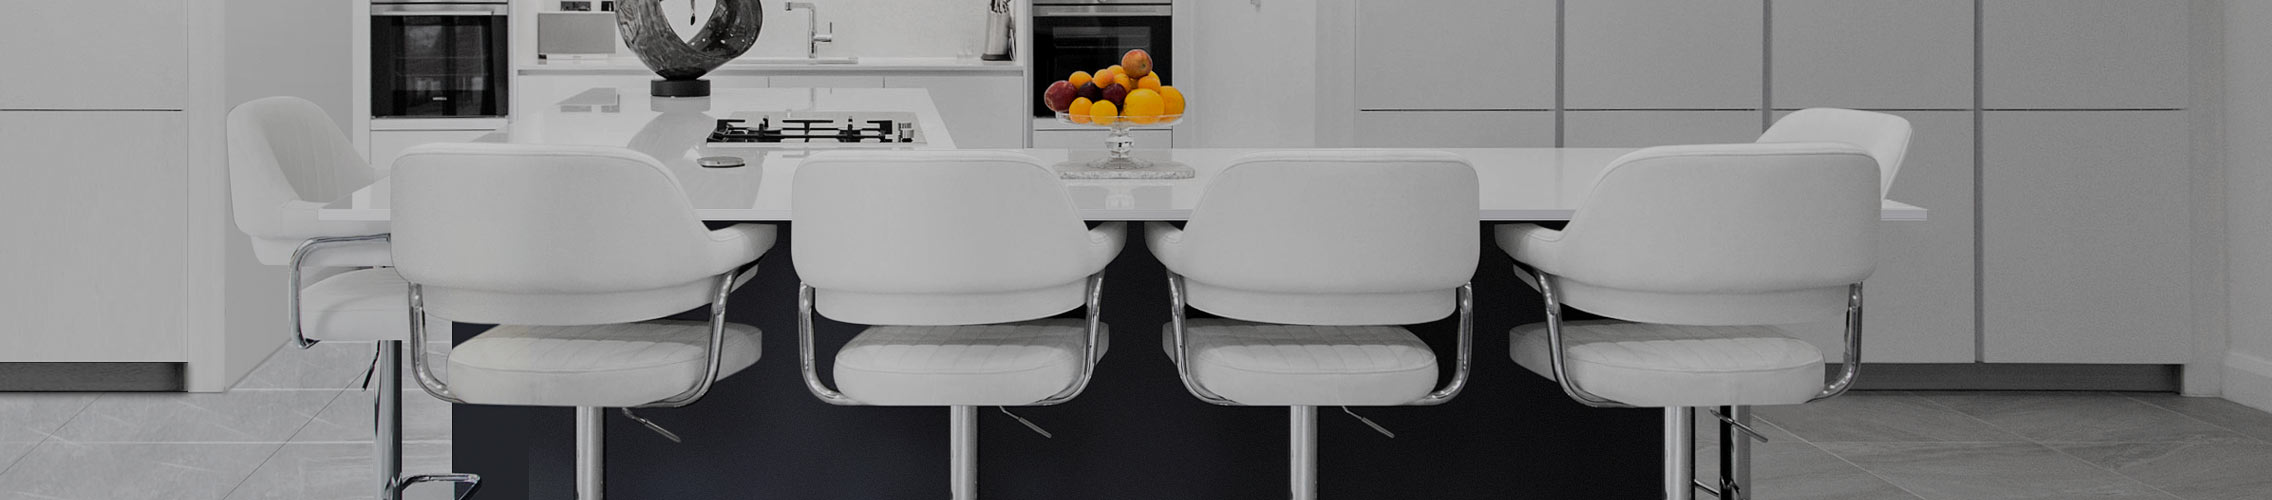 Swivel Kitchen Stools